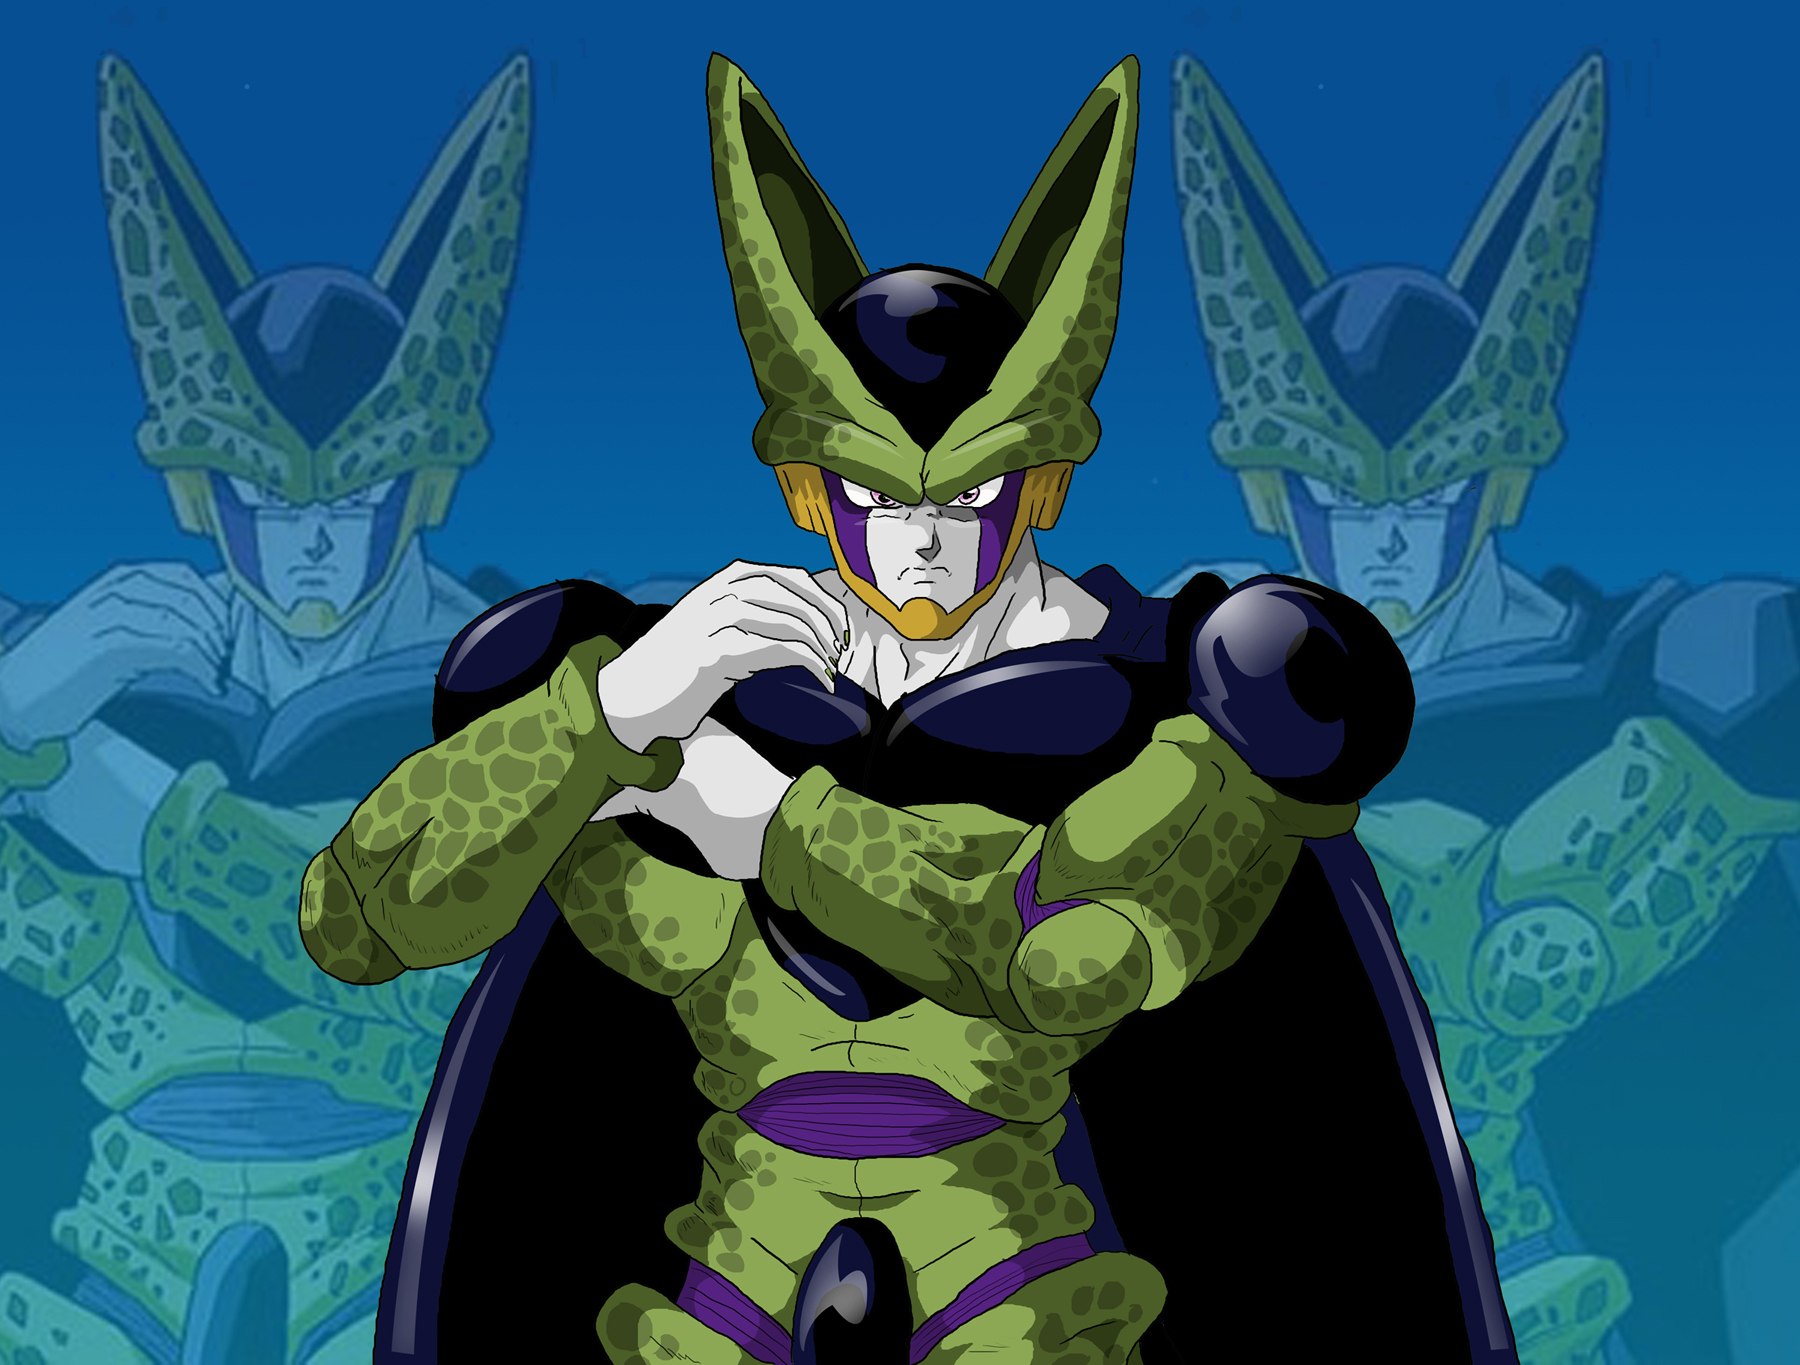 Cell Dbz Wallpaper 39004 ZWALLPIX 1800x1365